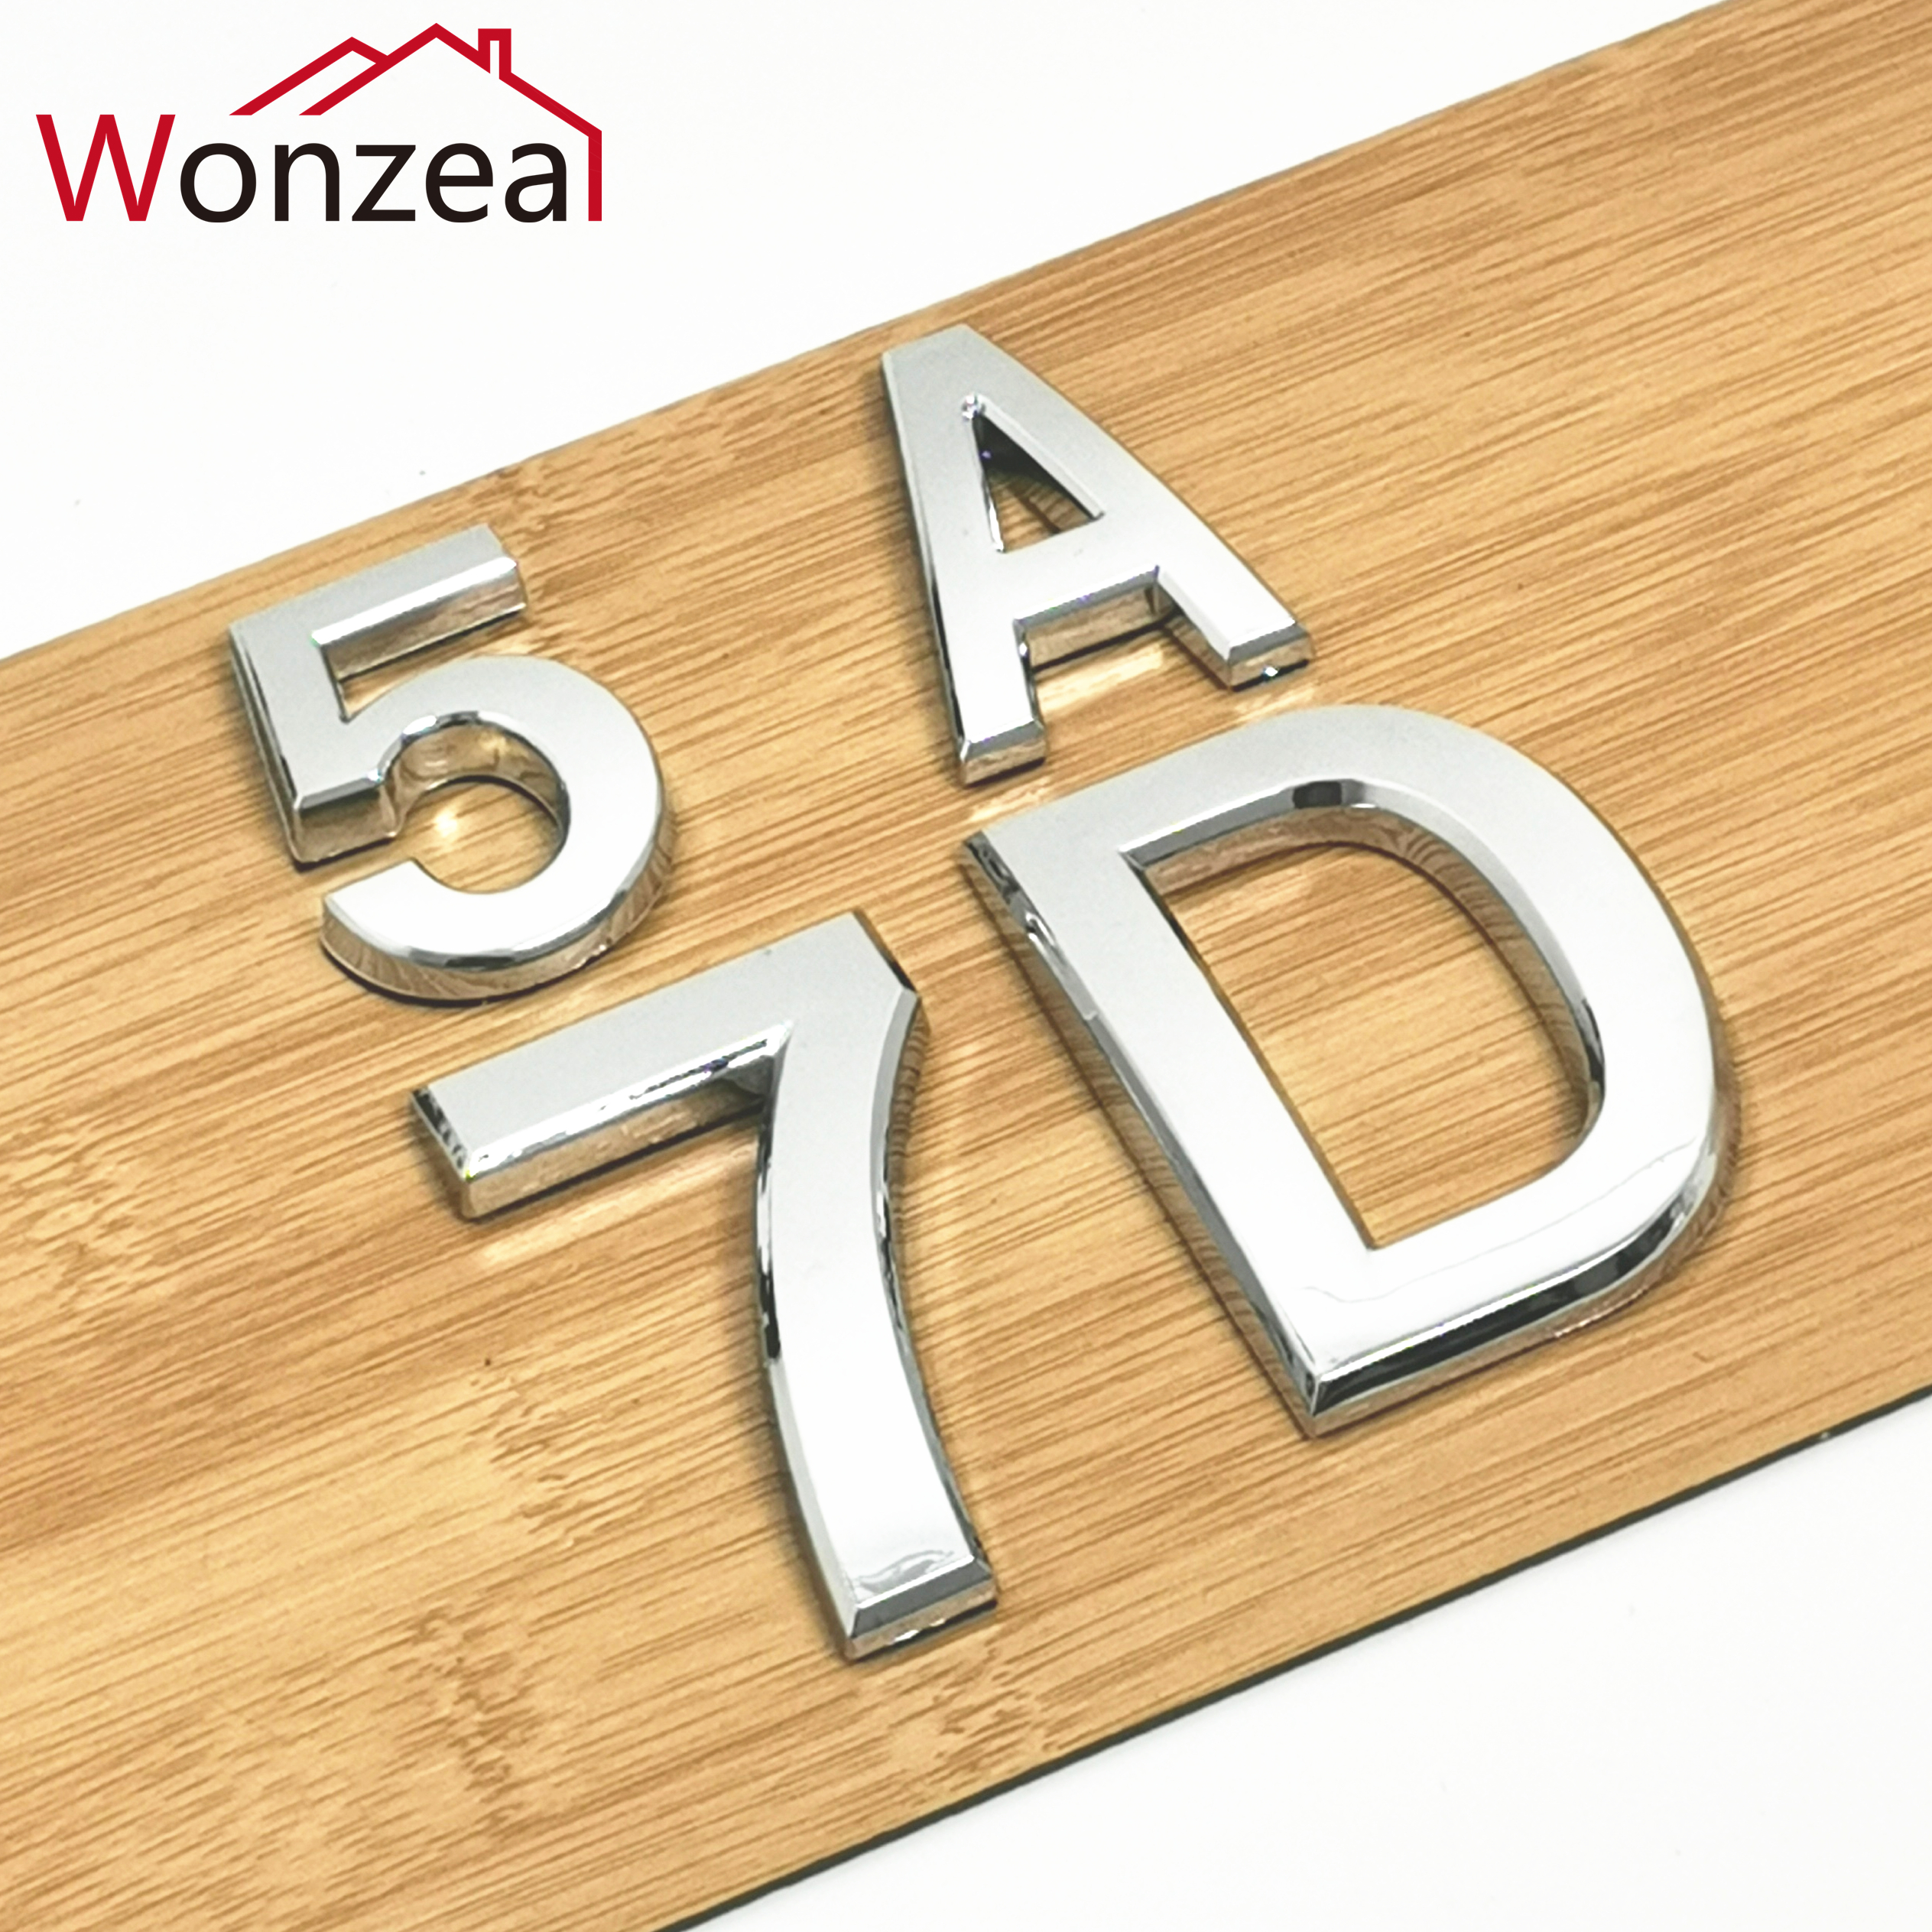 5cm/7cm 0123456789 A to Z Modern Silver Plaque Number House Hotel Door Address Digits Sticker Plate Sign ABS plastic(China)